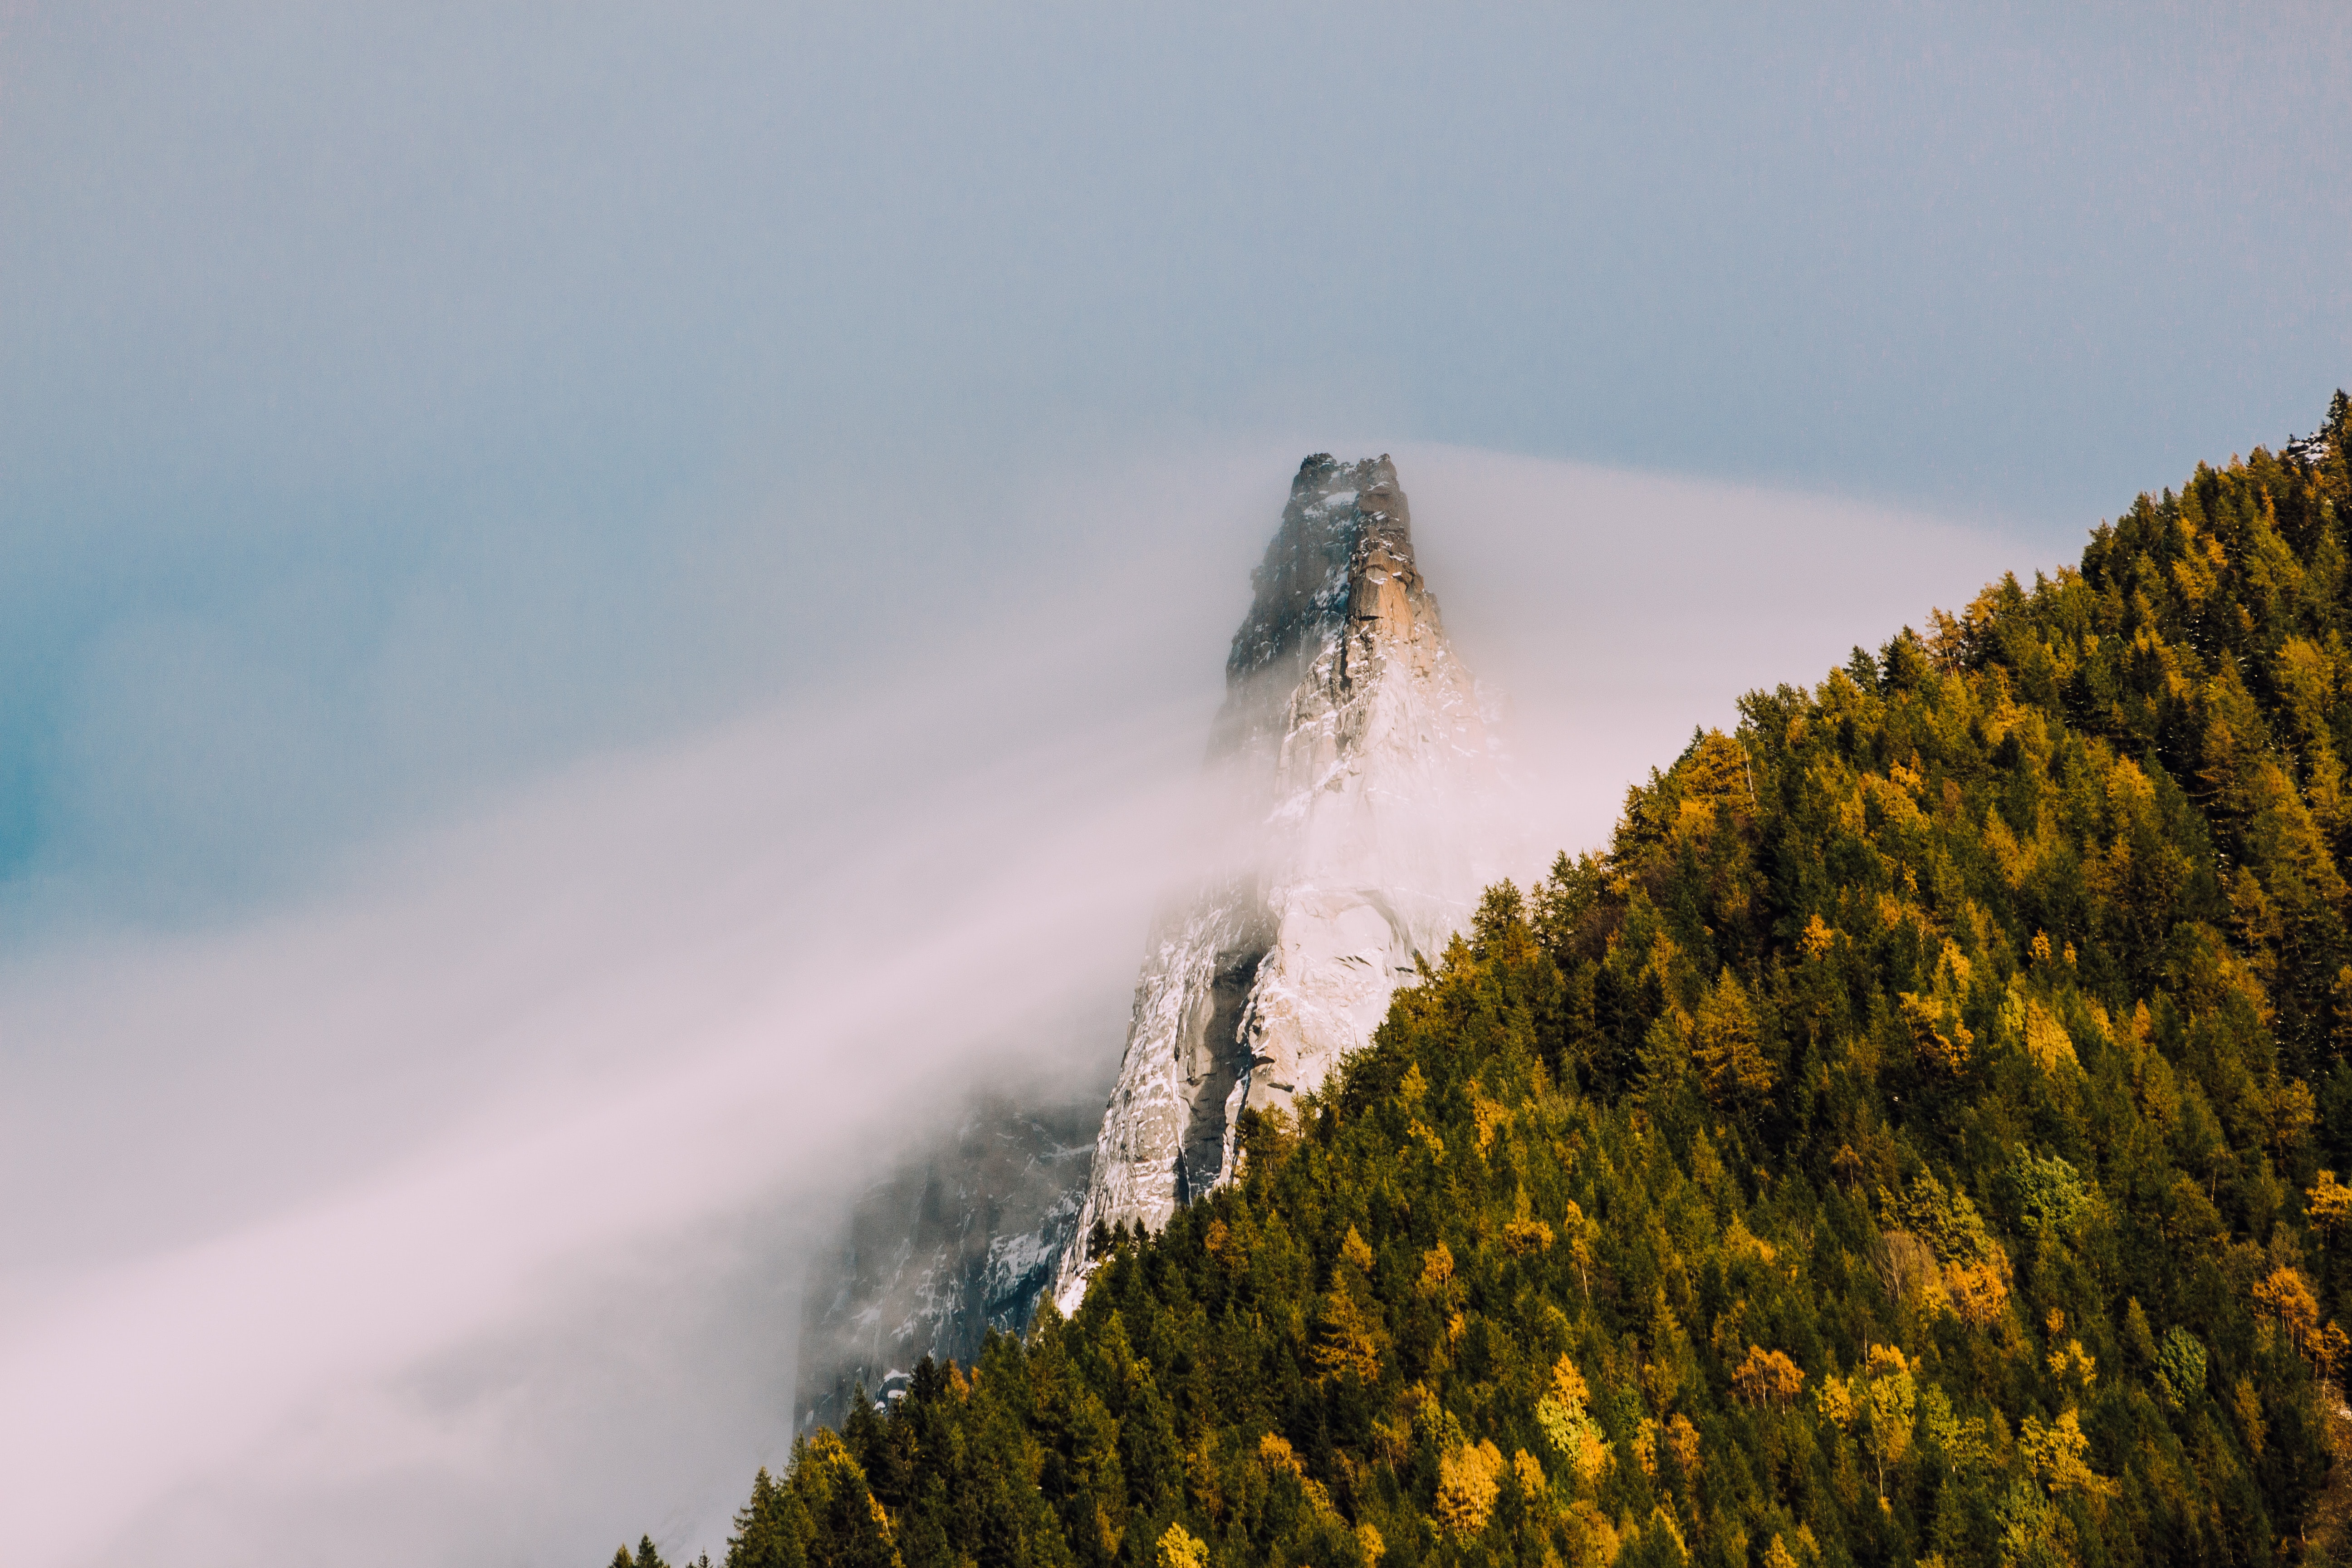 mountain cover fog